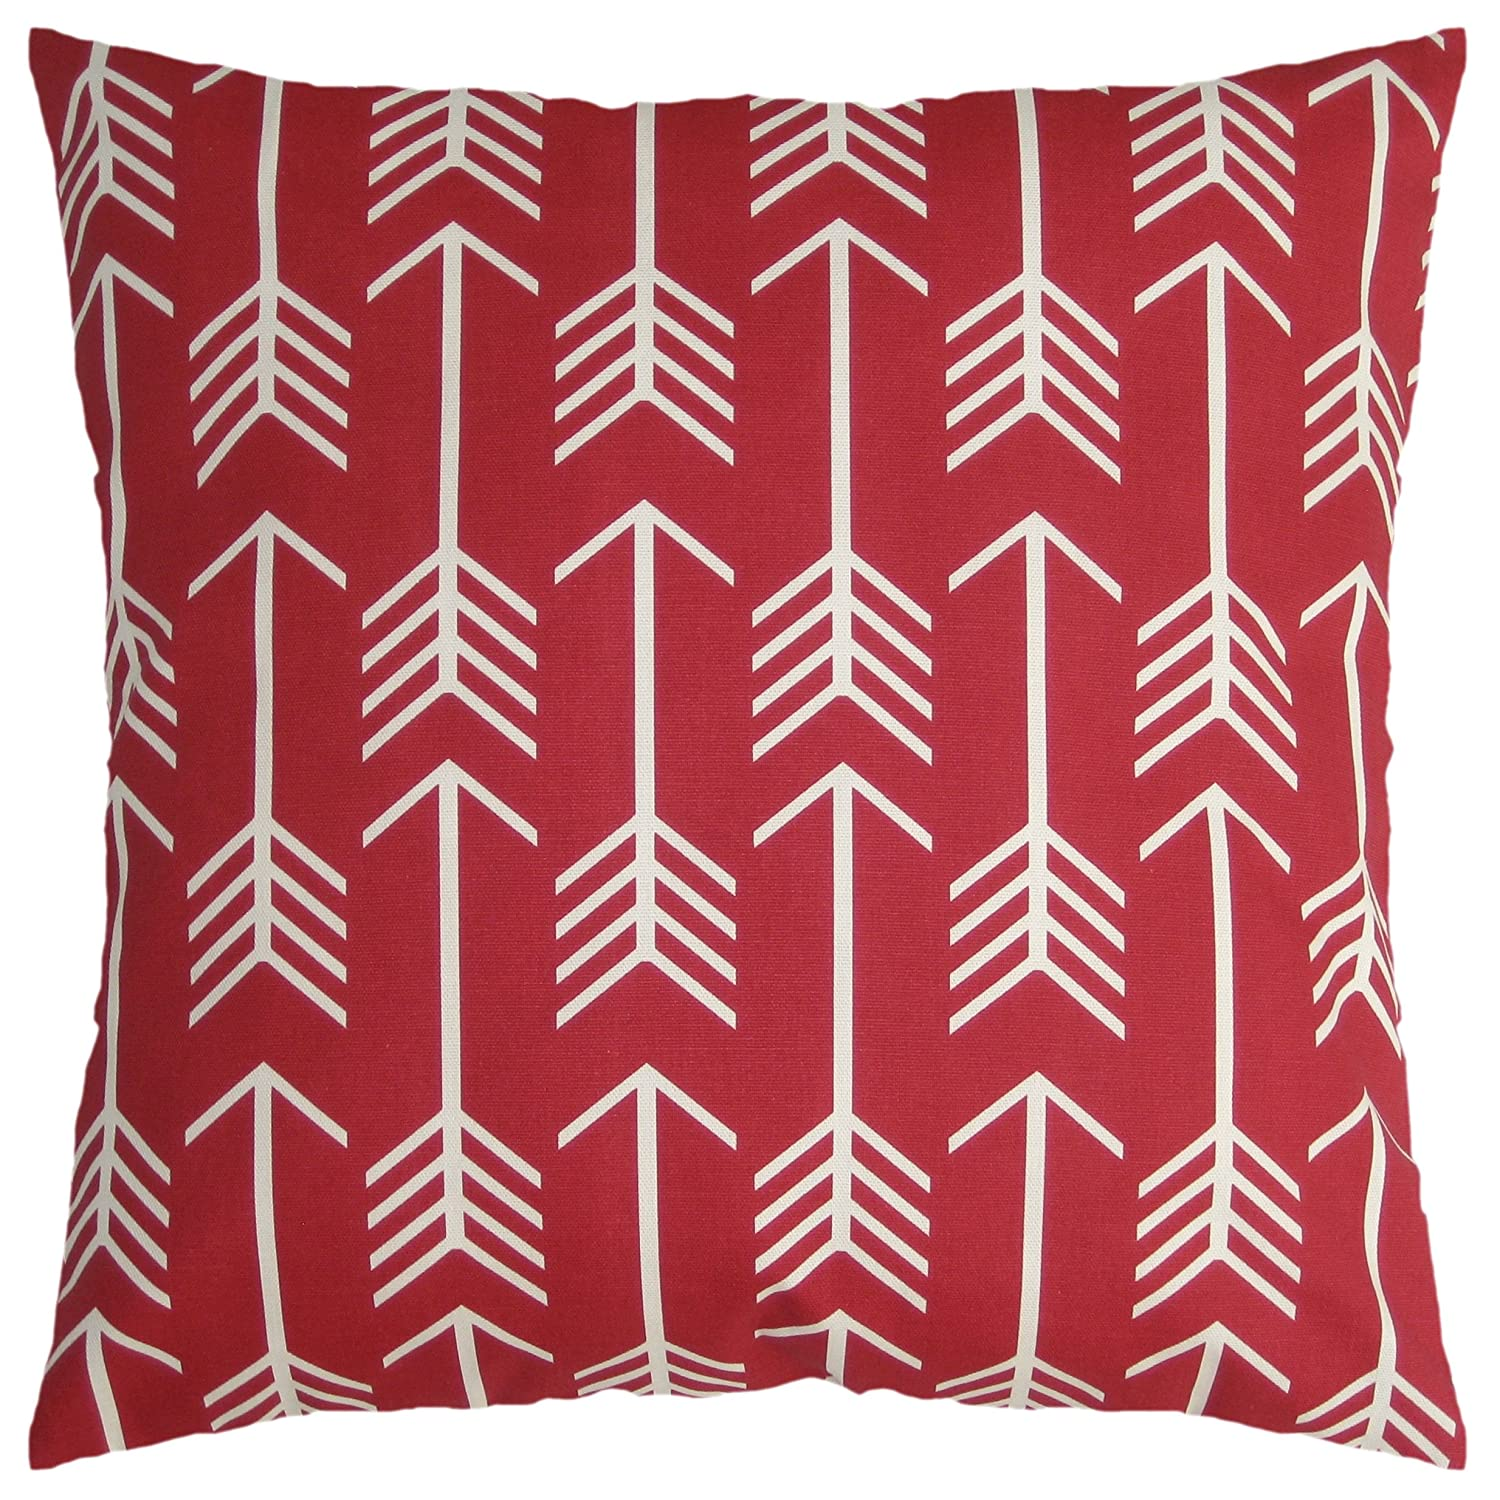 JinStyles Arrow Cotton Canvas Decorative Throw Pillow Cover (Christmas Red and White, 18 x 18 inches)